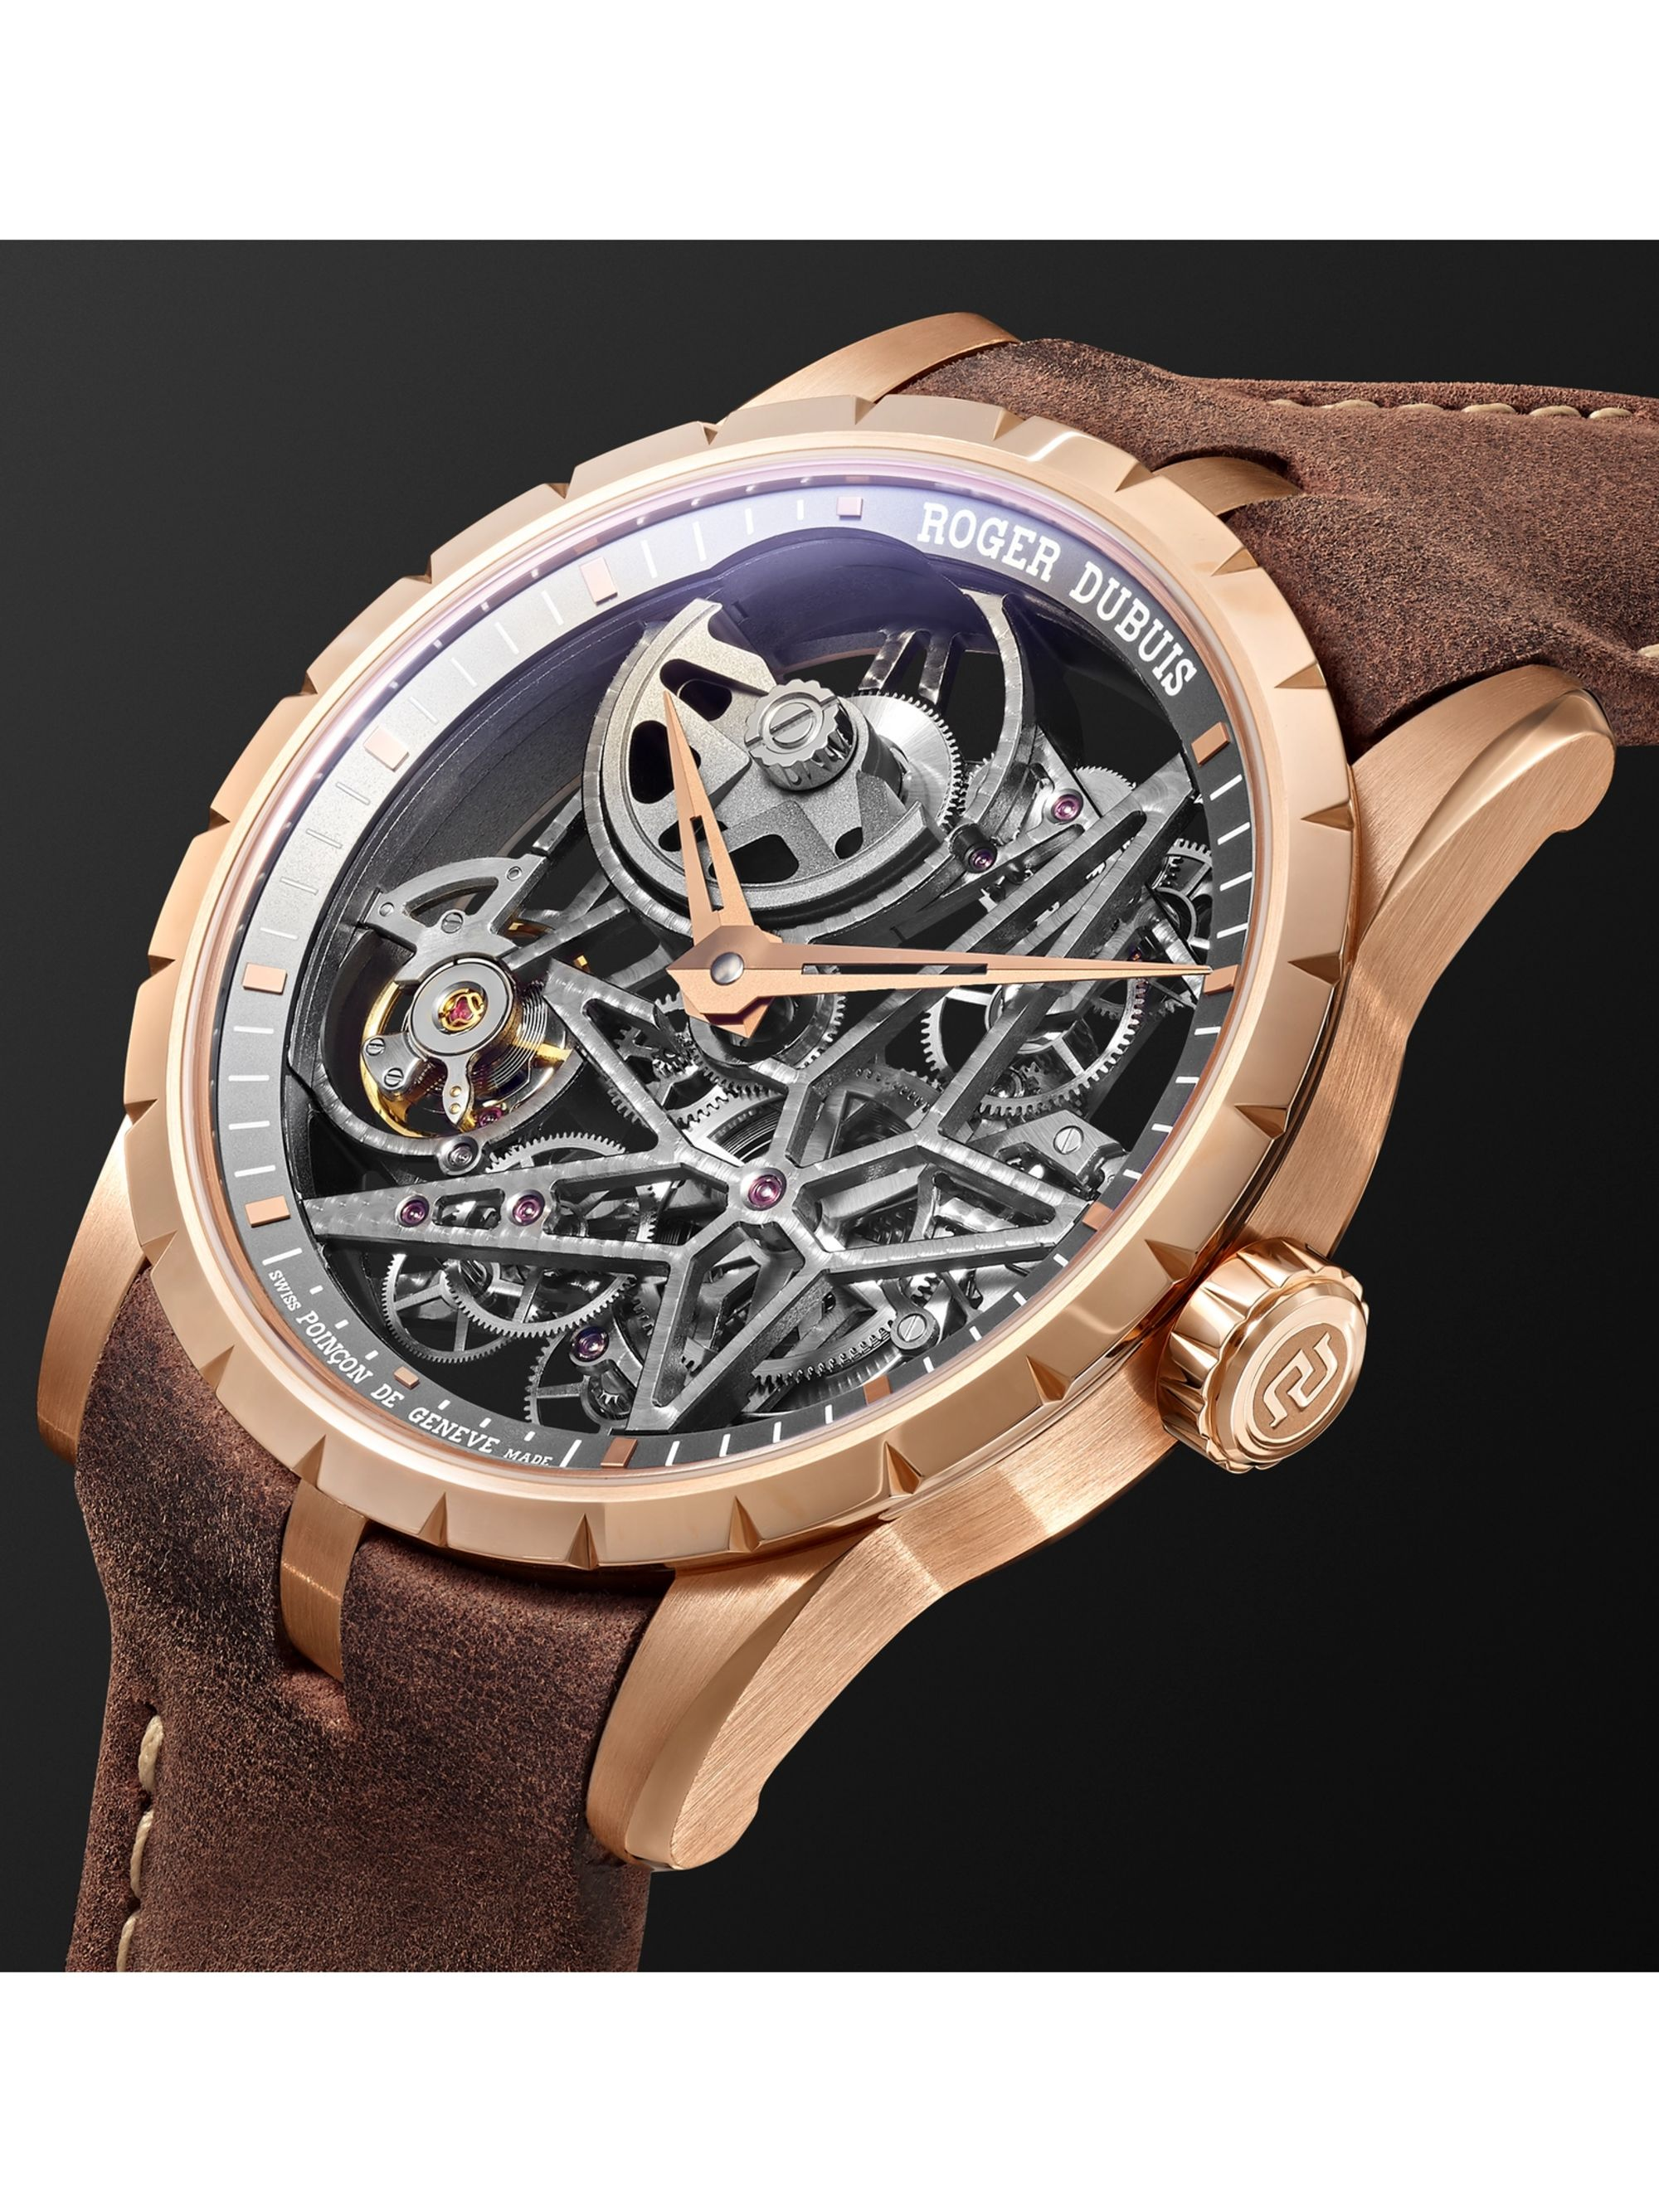 Roger Dubuis Excalibur Automatic Skeleton 42mm 18-Karat Pink Gold and Leather Watch, Ref. No. DBEX0727